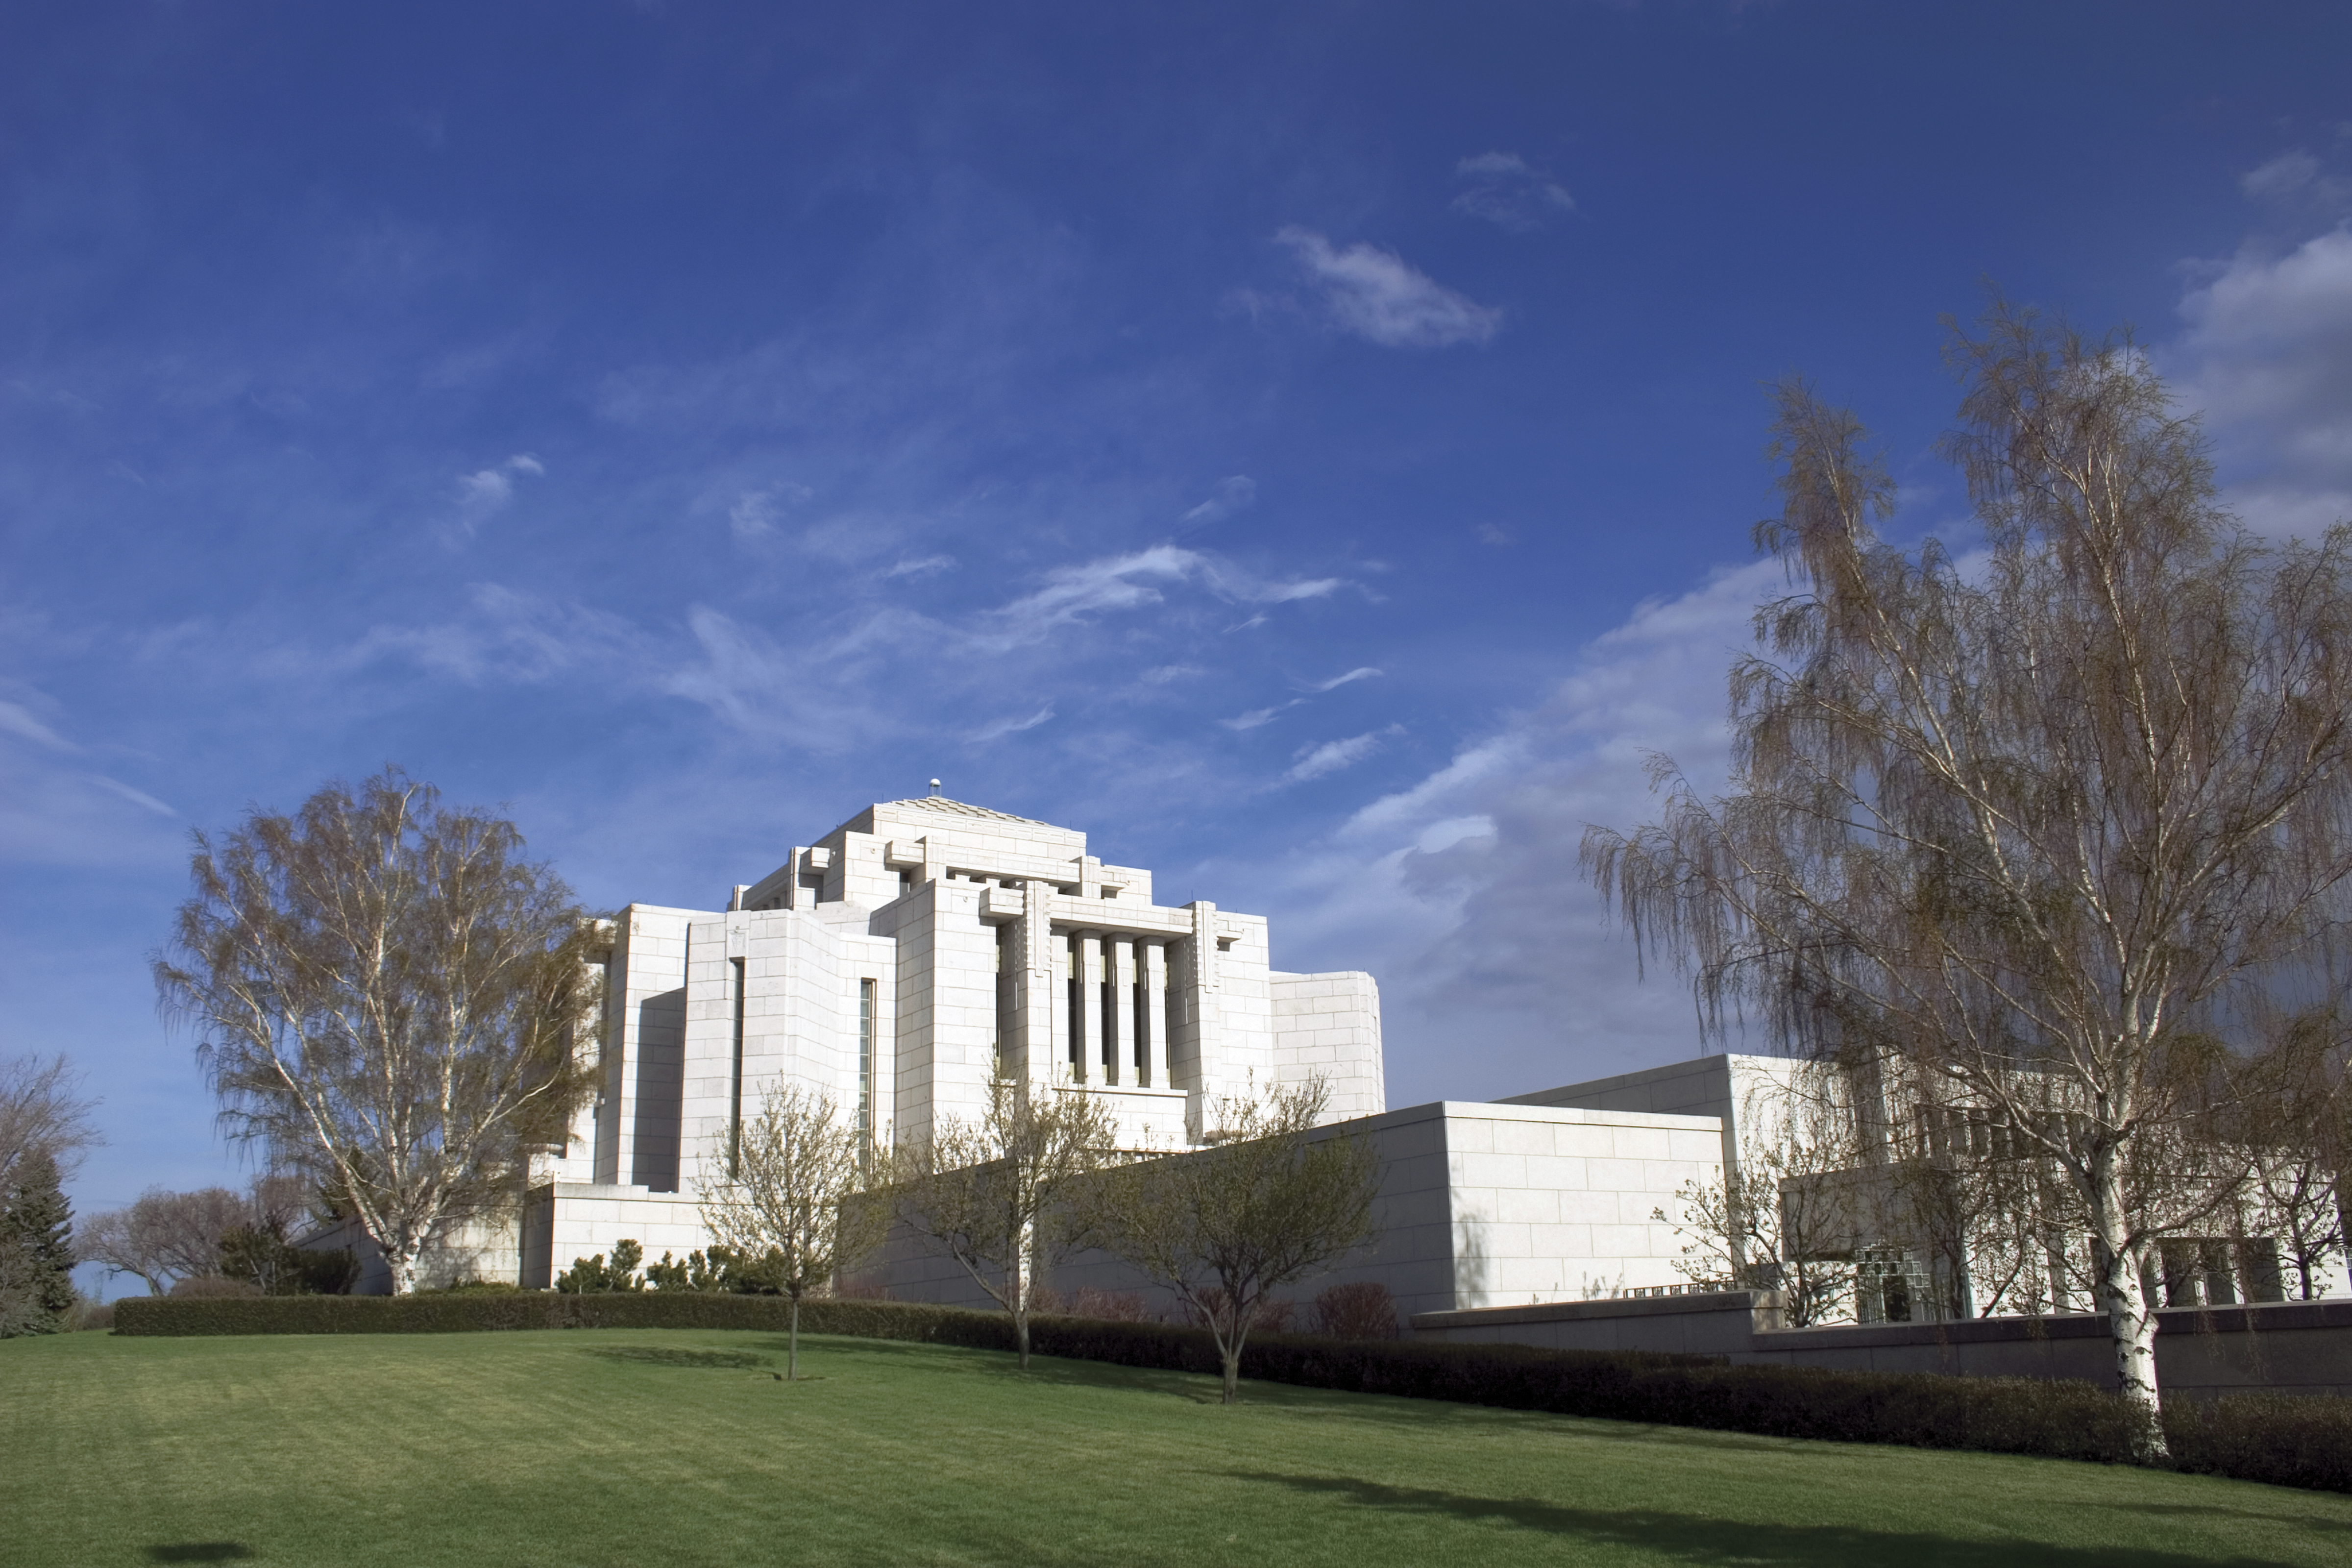 The Cardston Alberta Temple entrance, including scenery.